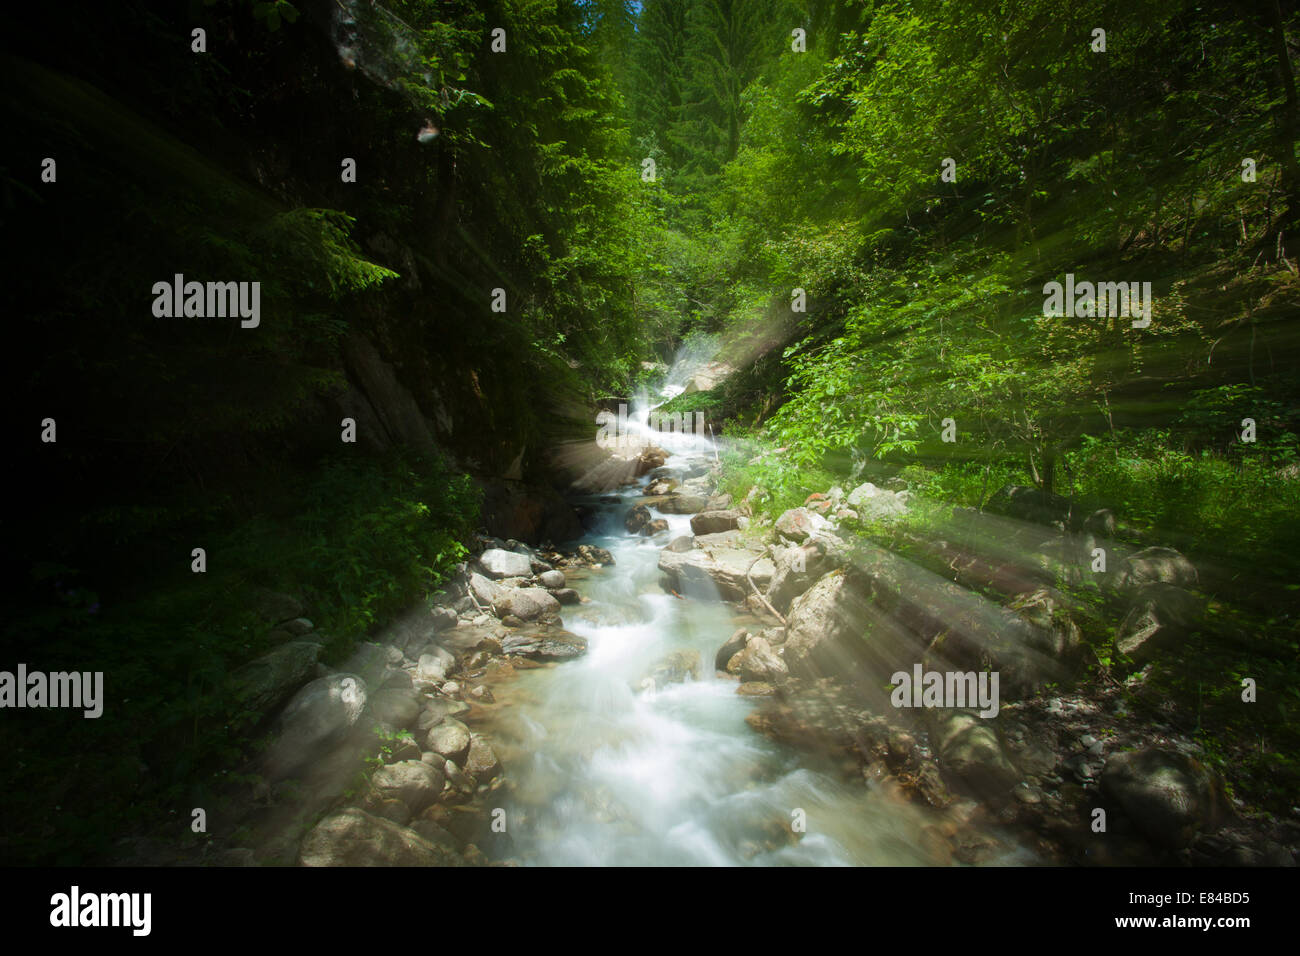 Mystic river in the forest - Stock Image